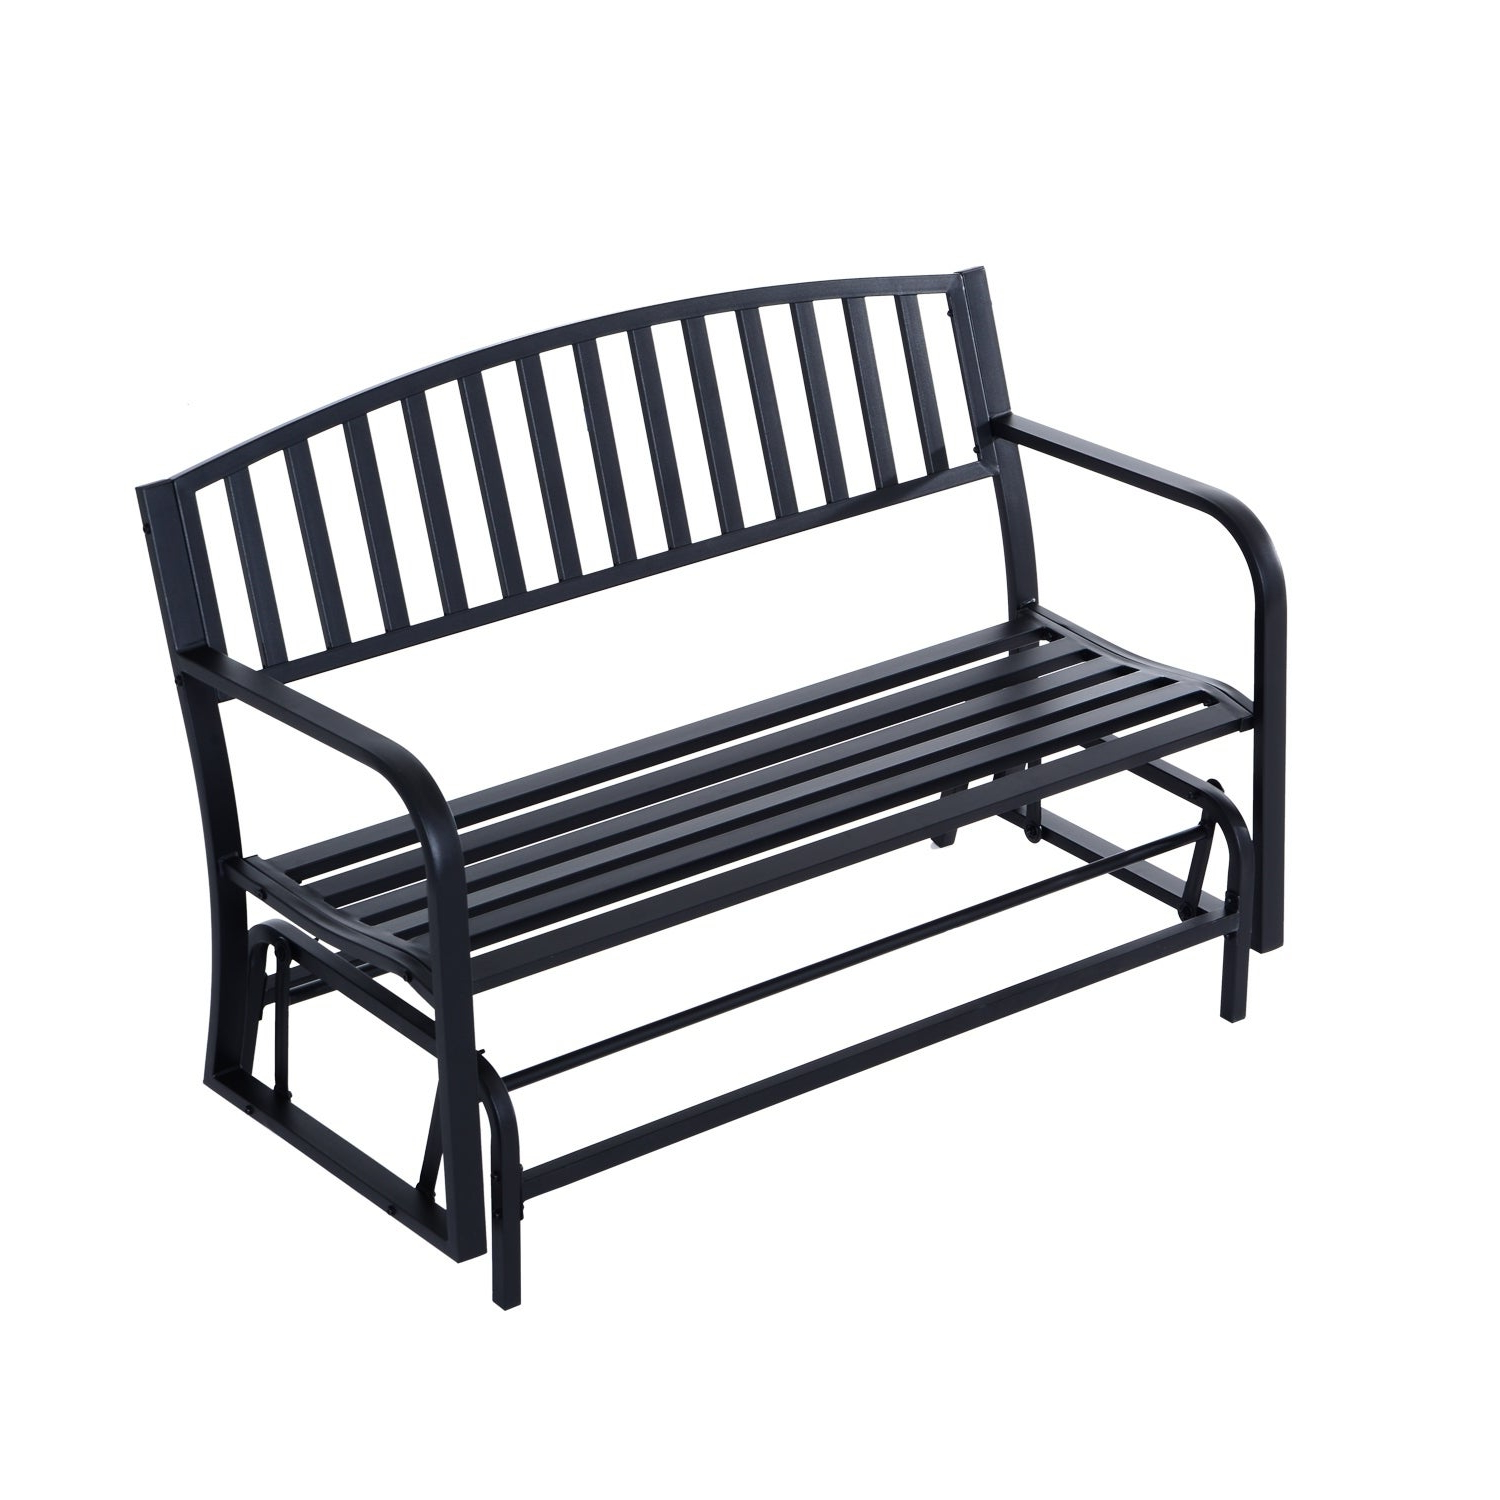 Most Recently Released Outsunny 50 Inch Outdoor Steel Patio Swing Glider Bench – Black Inside Outdoor Patio Swing Glider Bench Chairs (View 19 of 25)